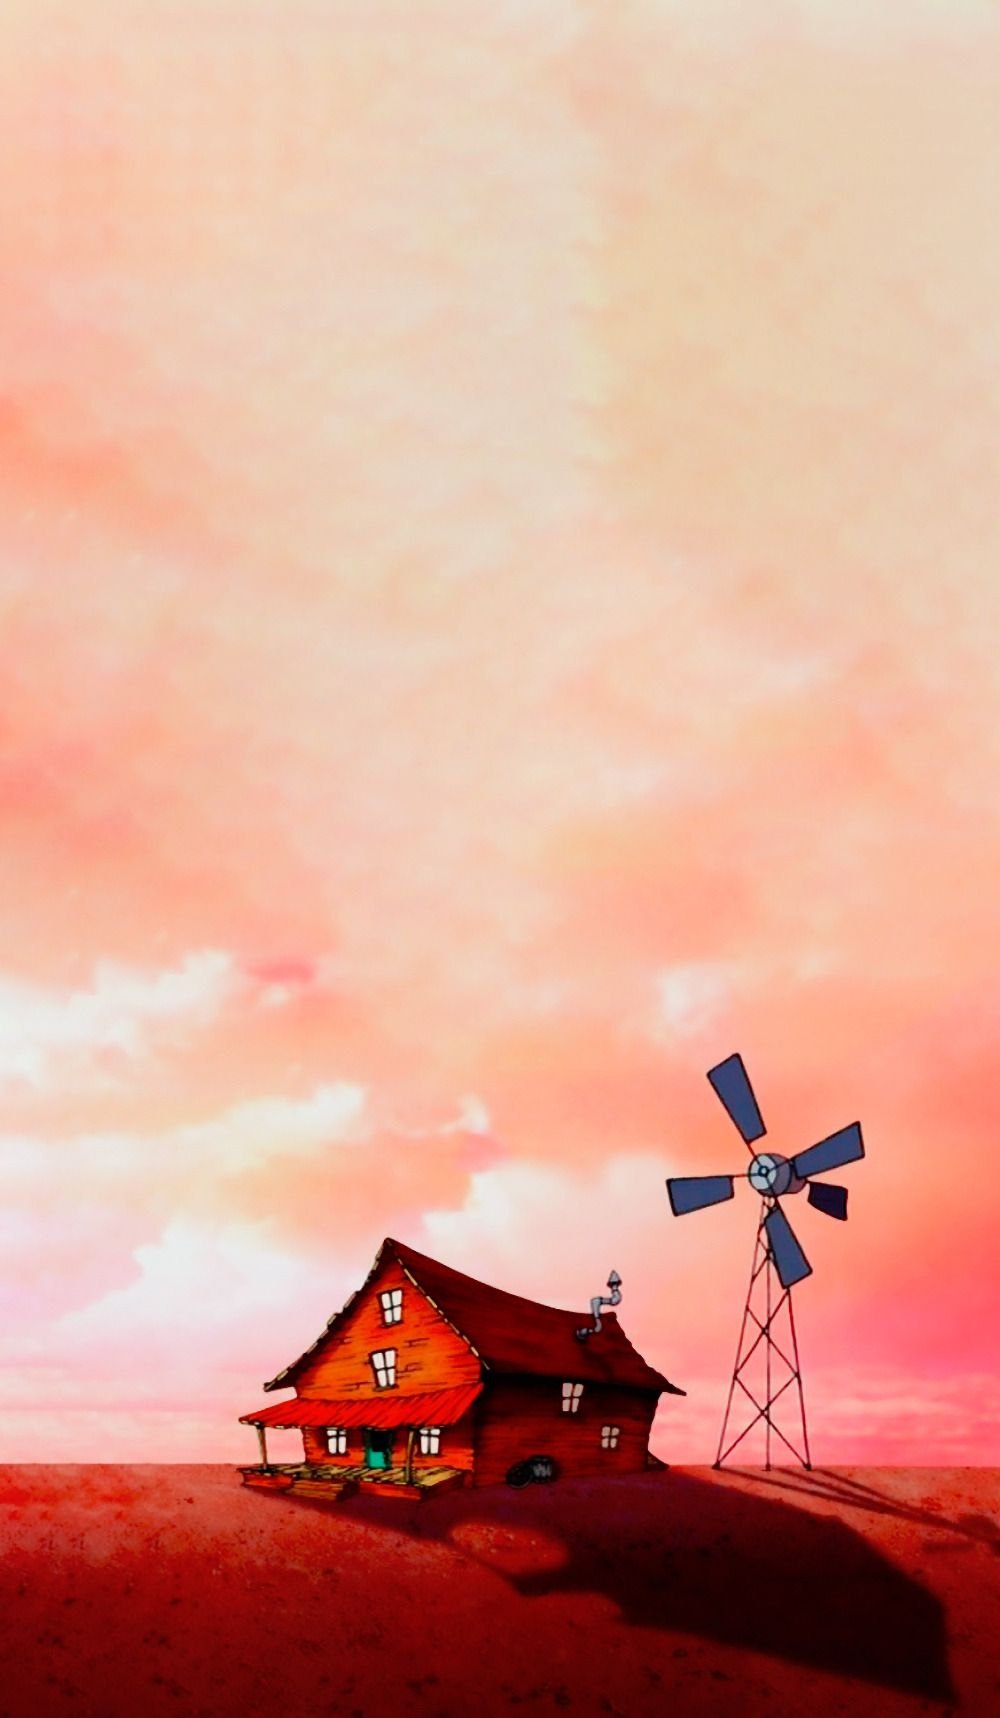 Free Download Courage The Cowardly Dog Scenery Wallpaper Fondos